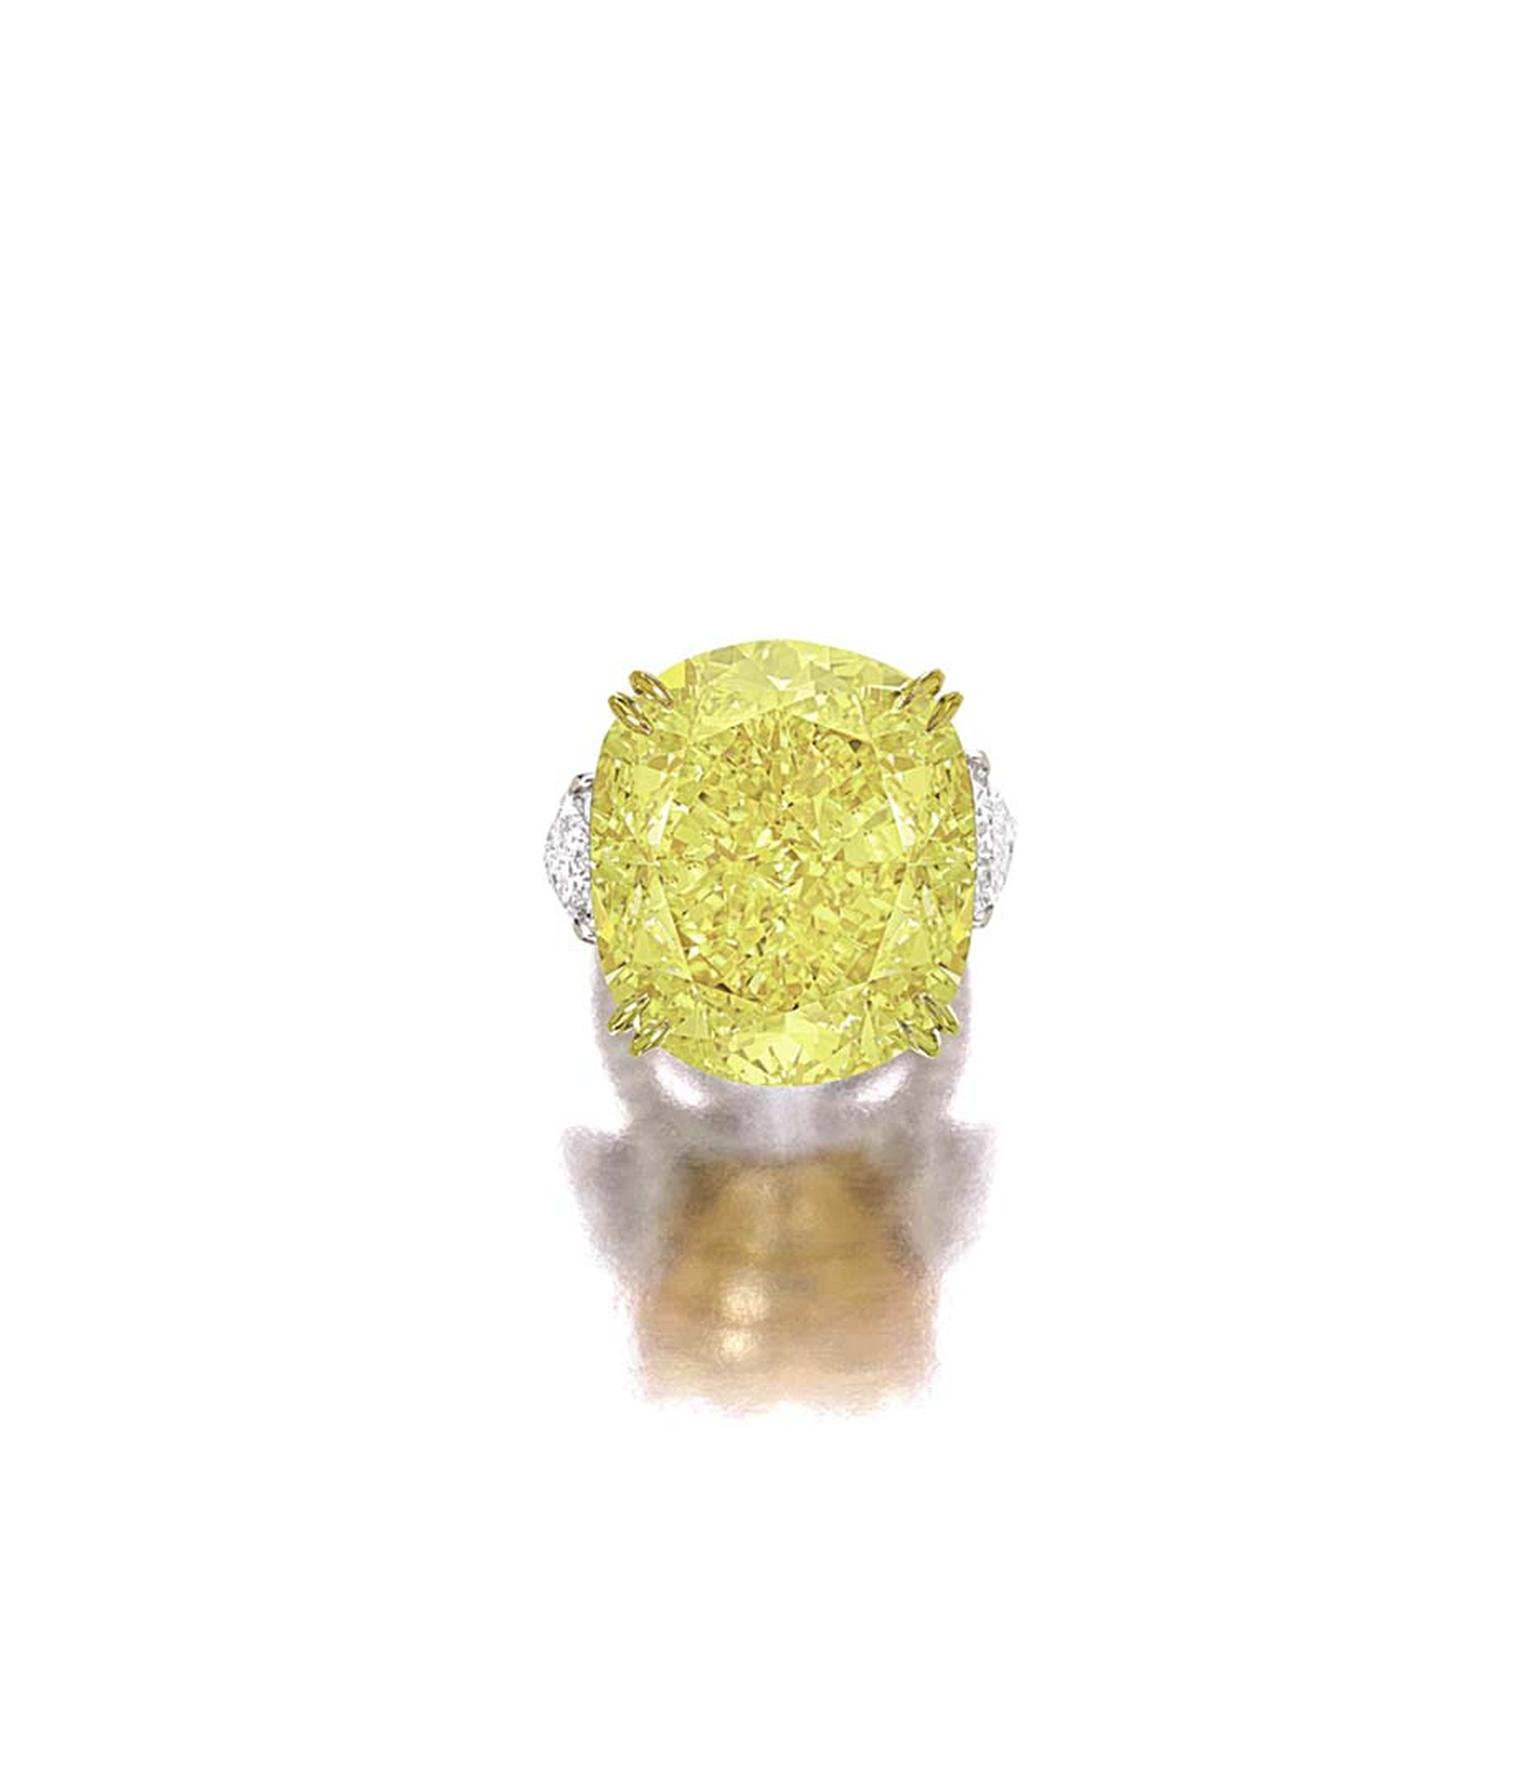 Sotheby's Hong Kong Magnificent Jewels and Jadeite spring sale includes a 77.77ct VS2 Fancy Vivid Yellow Diamond Ring (lot 1897) with an estimate of US$6.8m-7.5m.